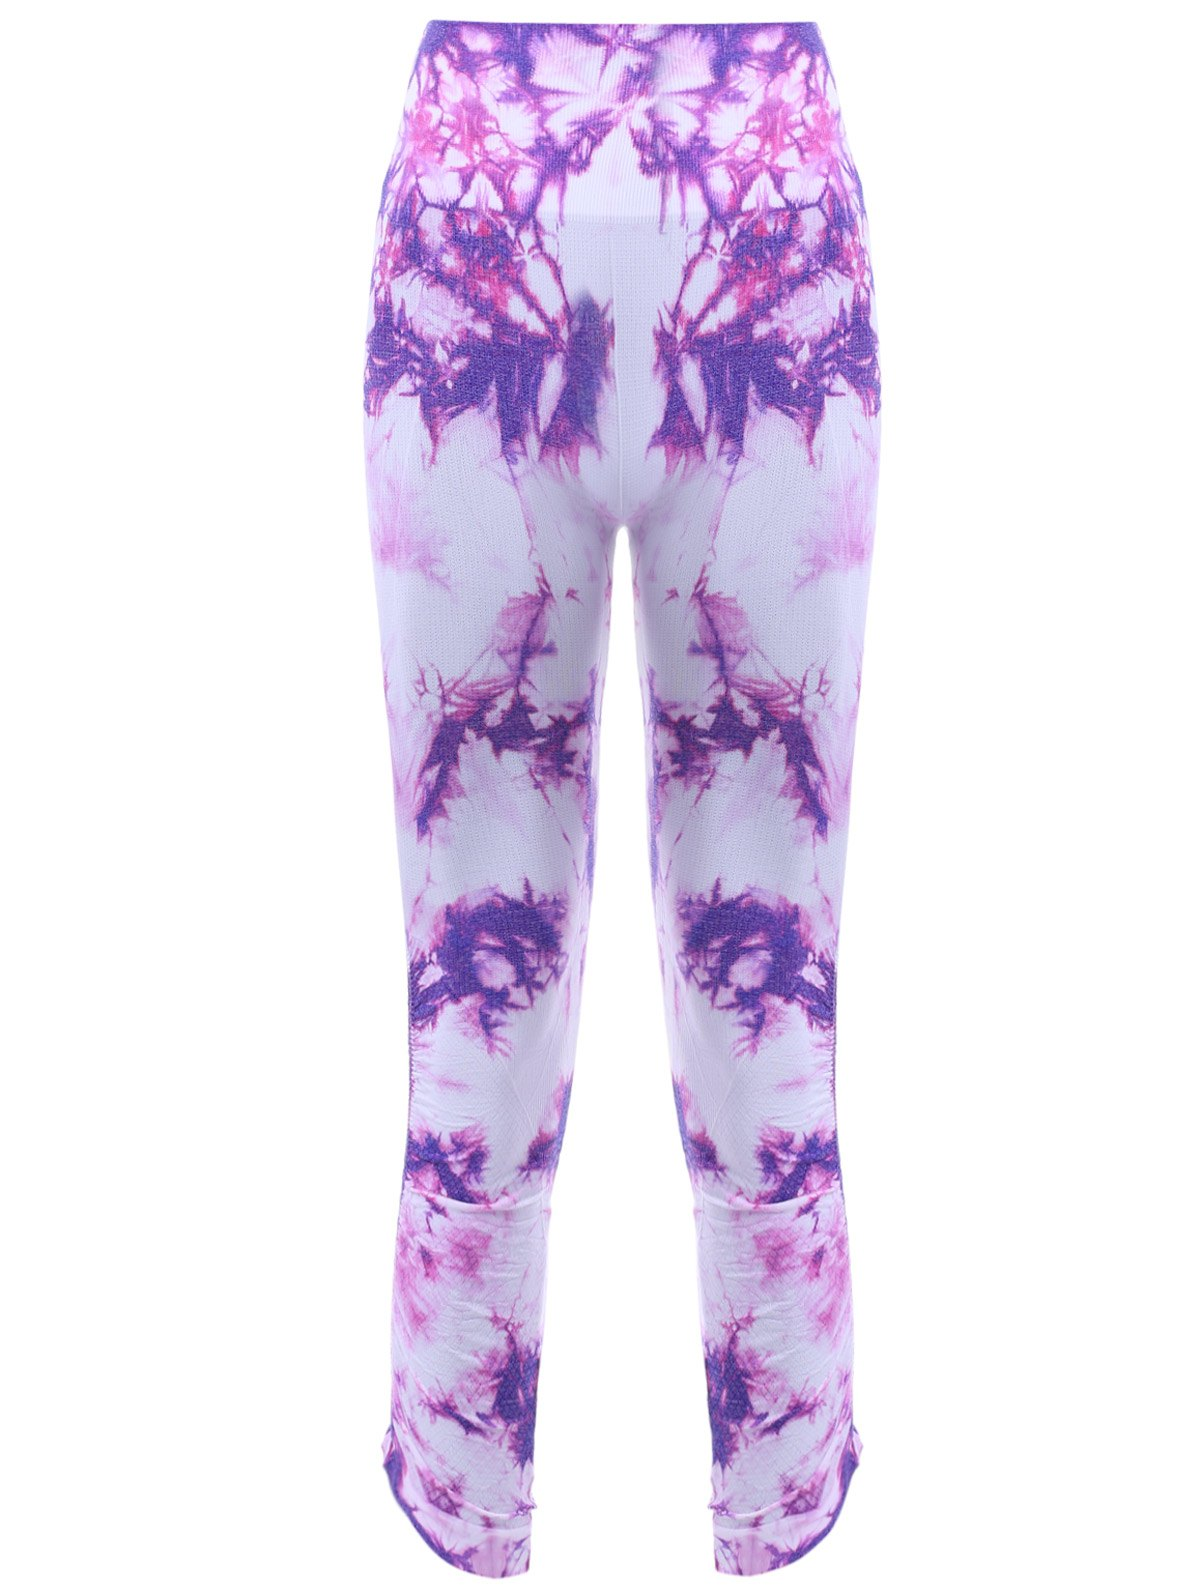 Sports Elastic Waist Tie Dyed Cropped Leggings - XL PURPLE